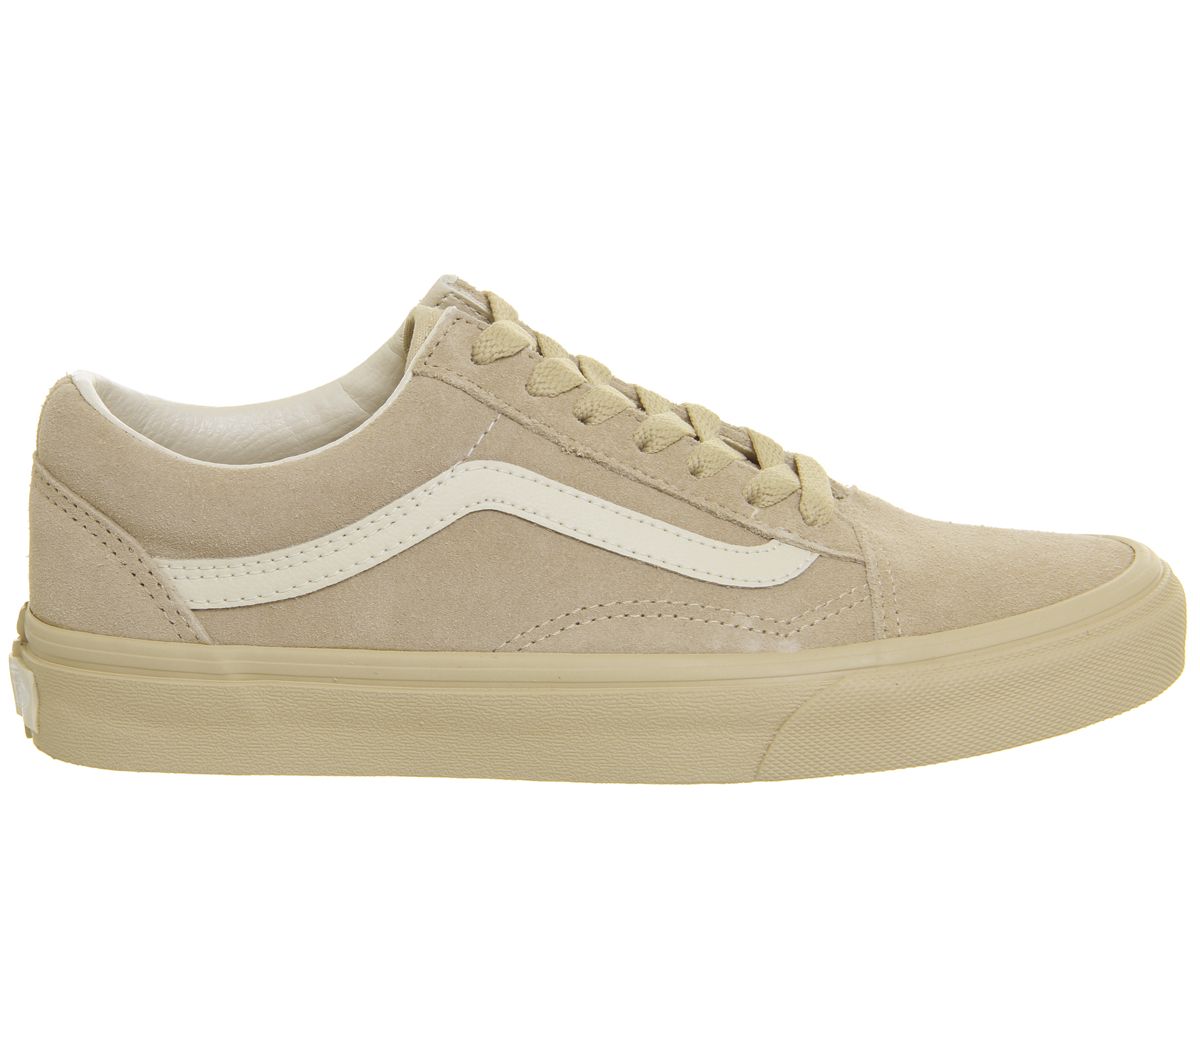 Uomo Vans Old Skool Trainers Trainers SHIFTING SAND EGGNOG EXCLUSIVE Trainers Trainers Schuhes 350dd8